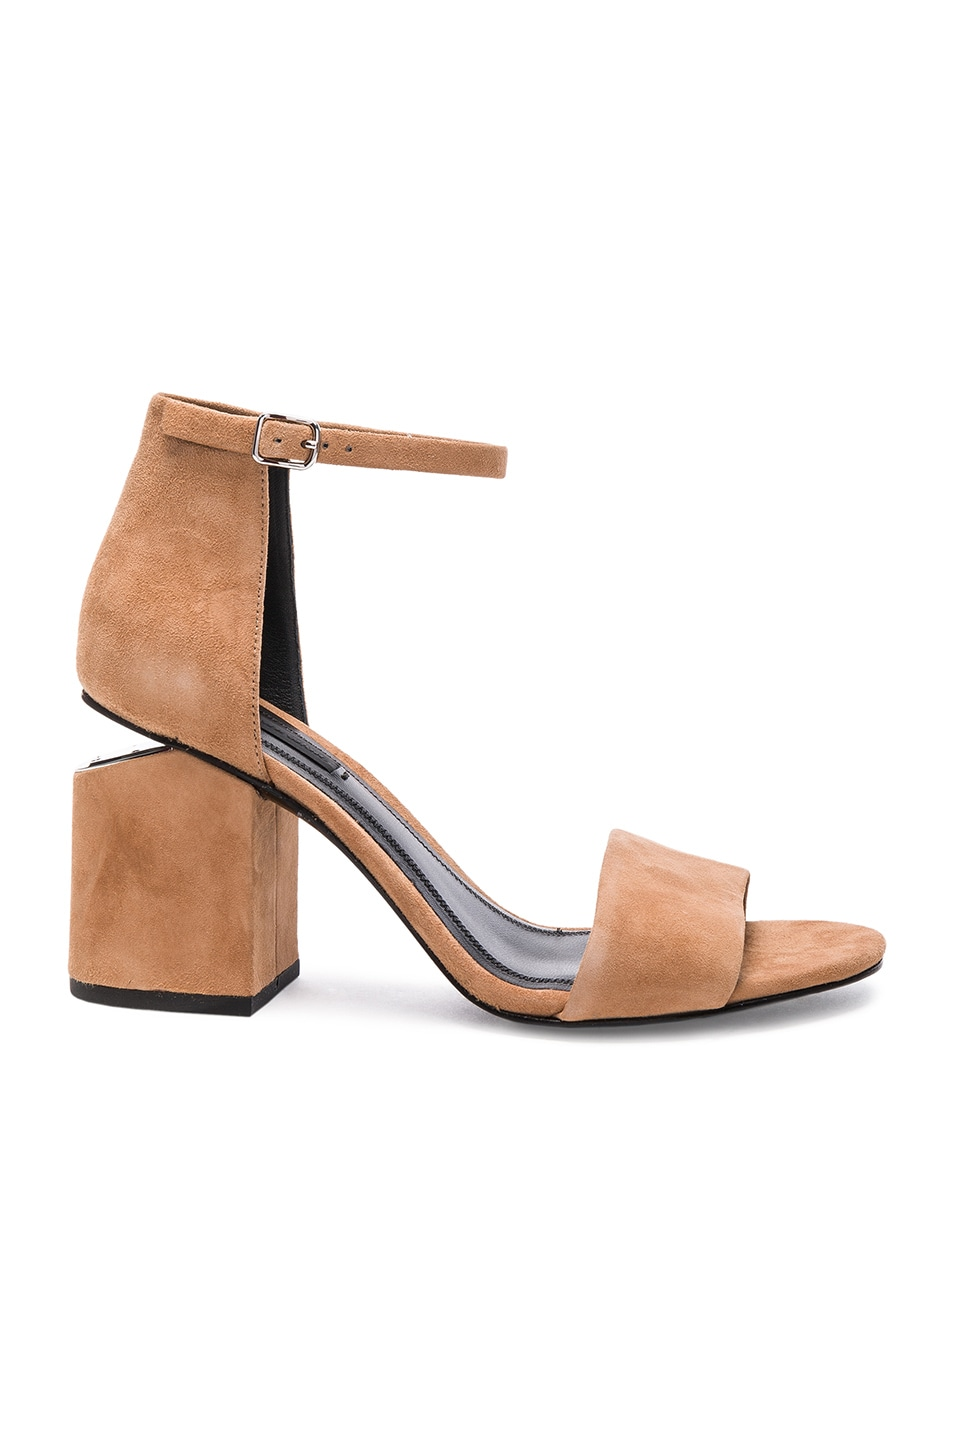 Image 1 of Alexander Wang Abby Suede Heels in Clay